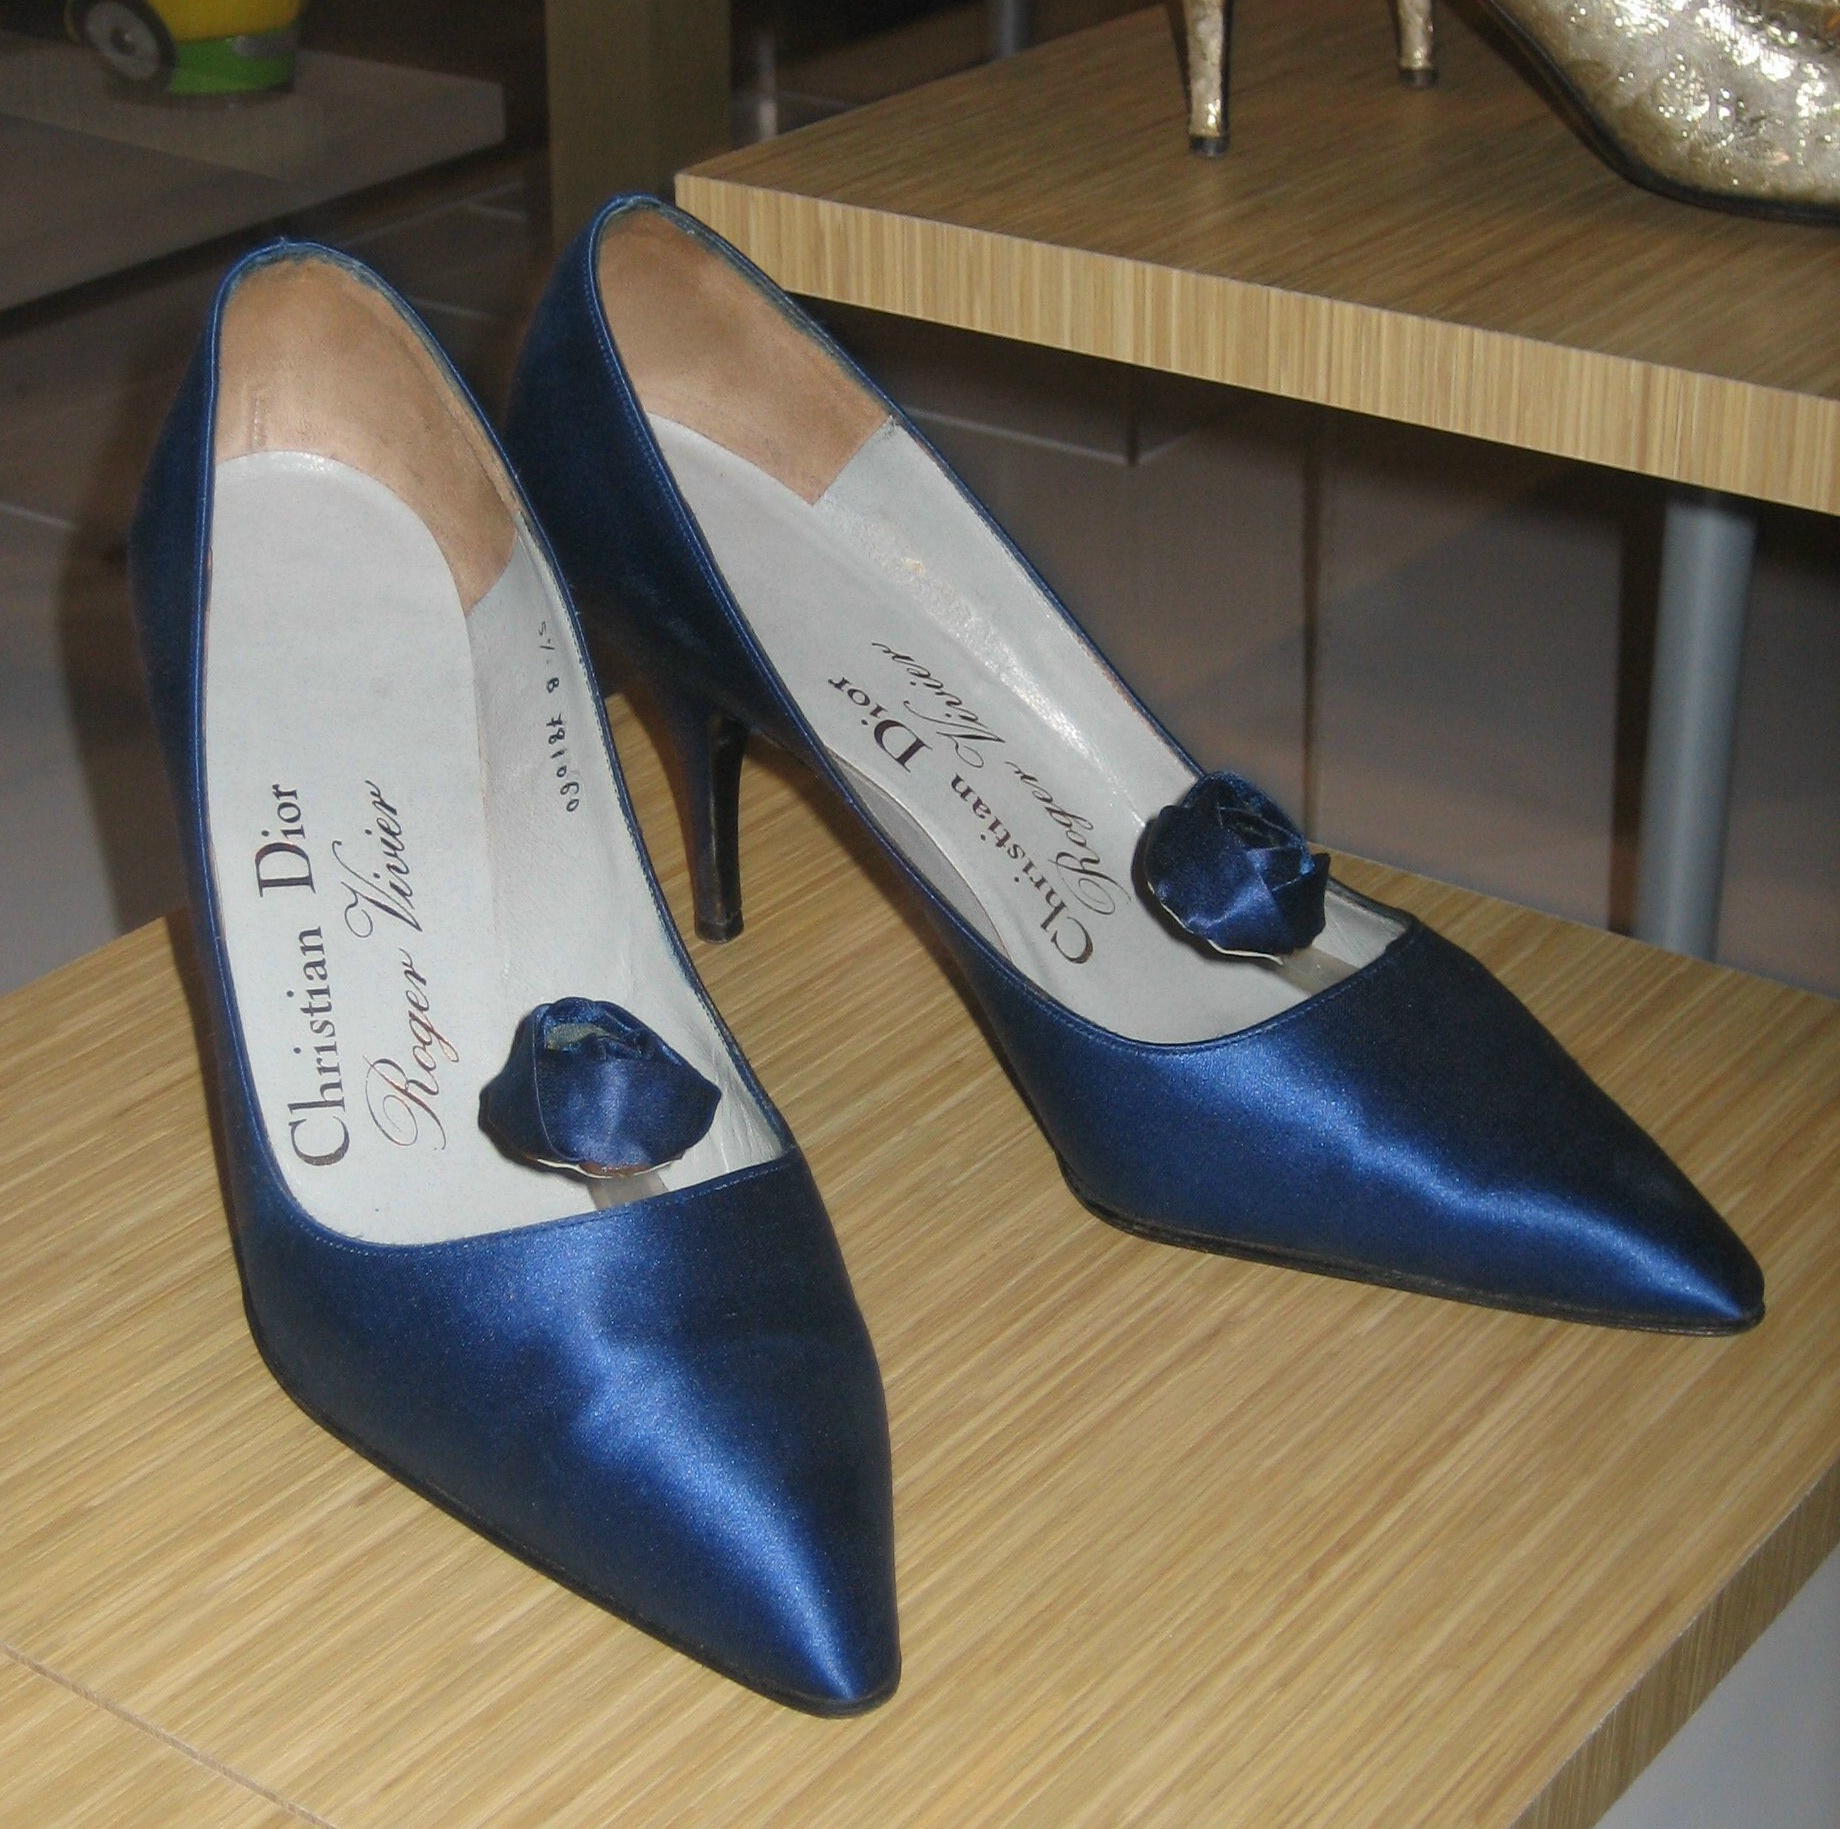 Christian Dior Shoes Uk